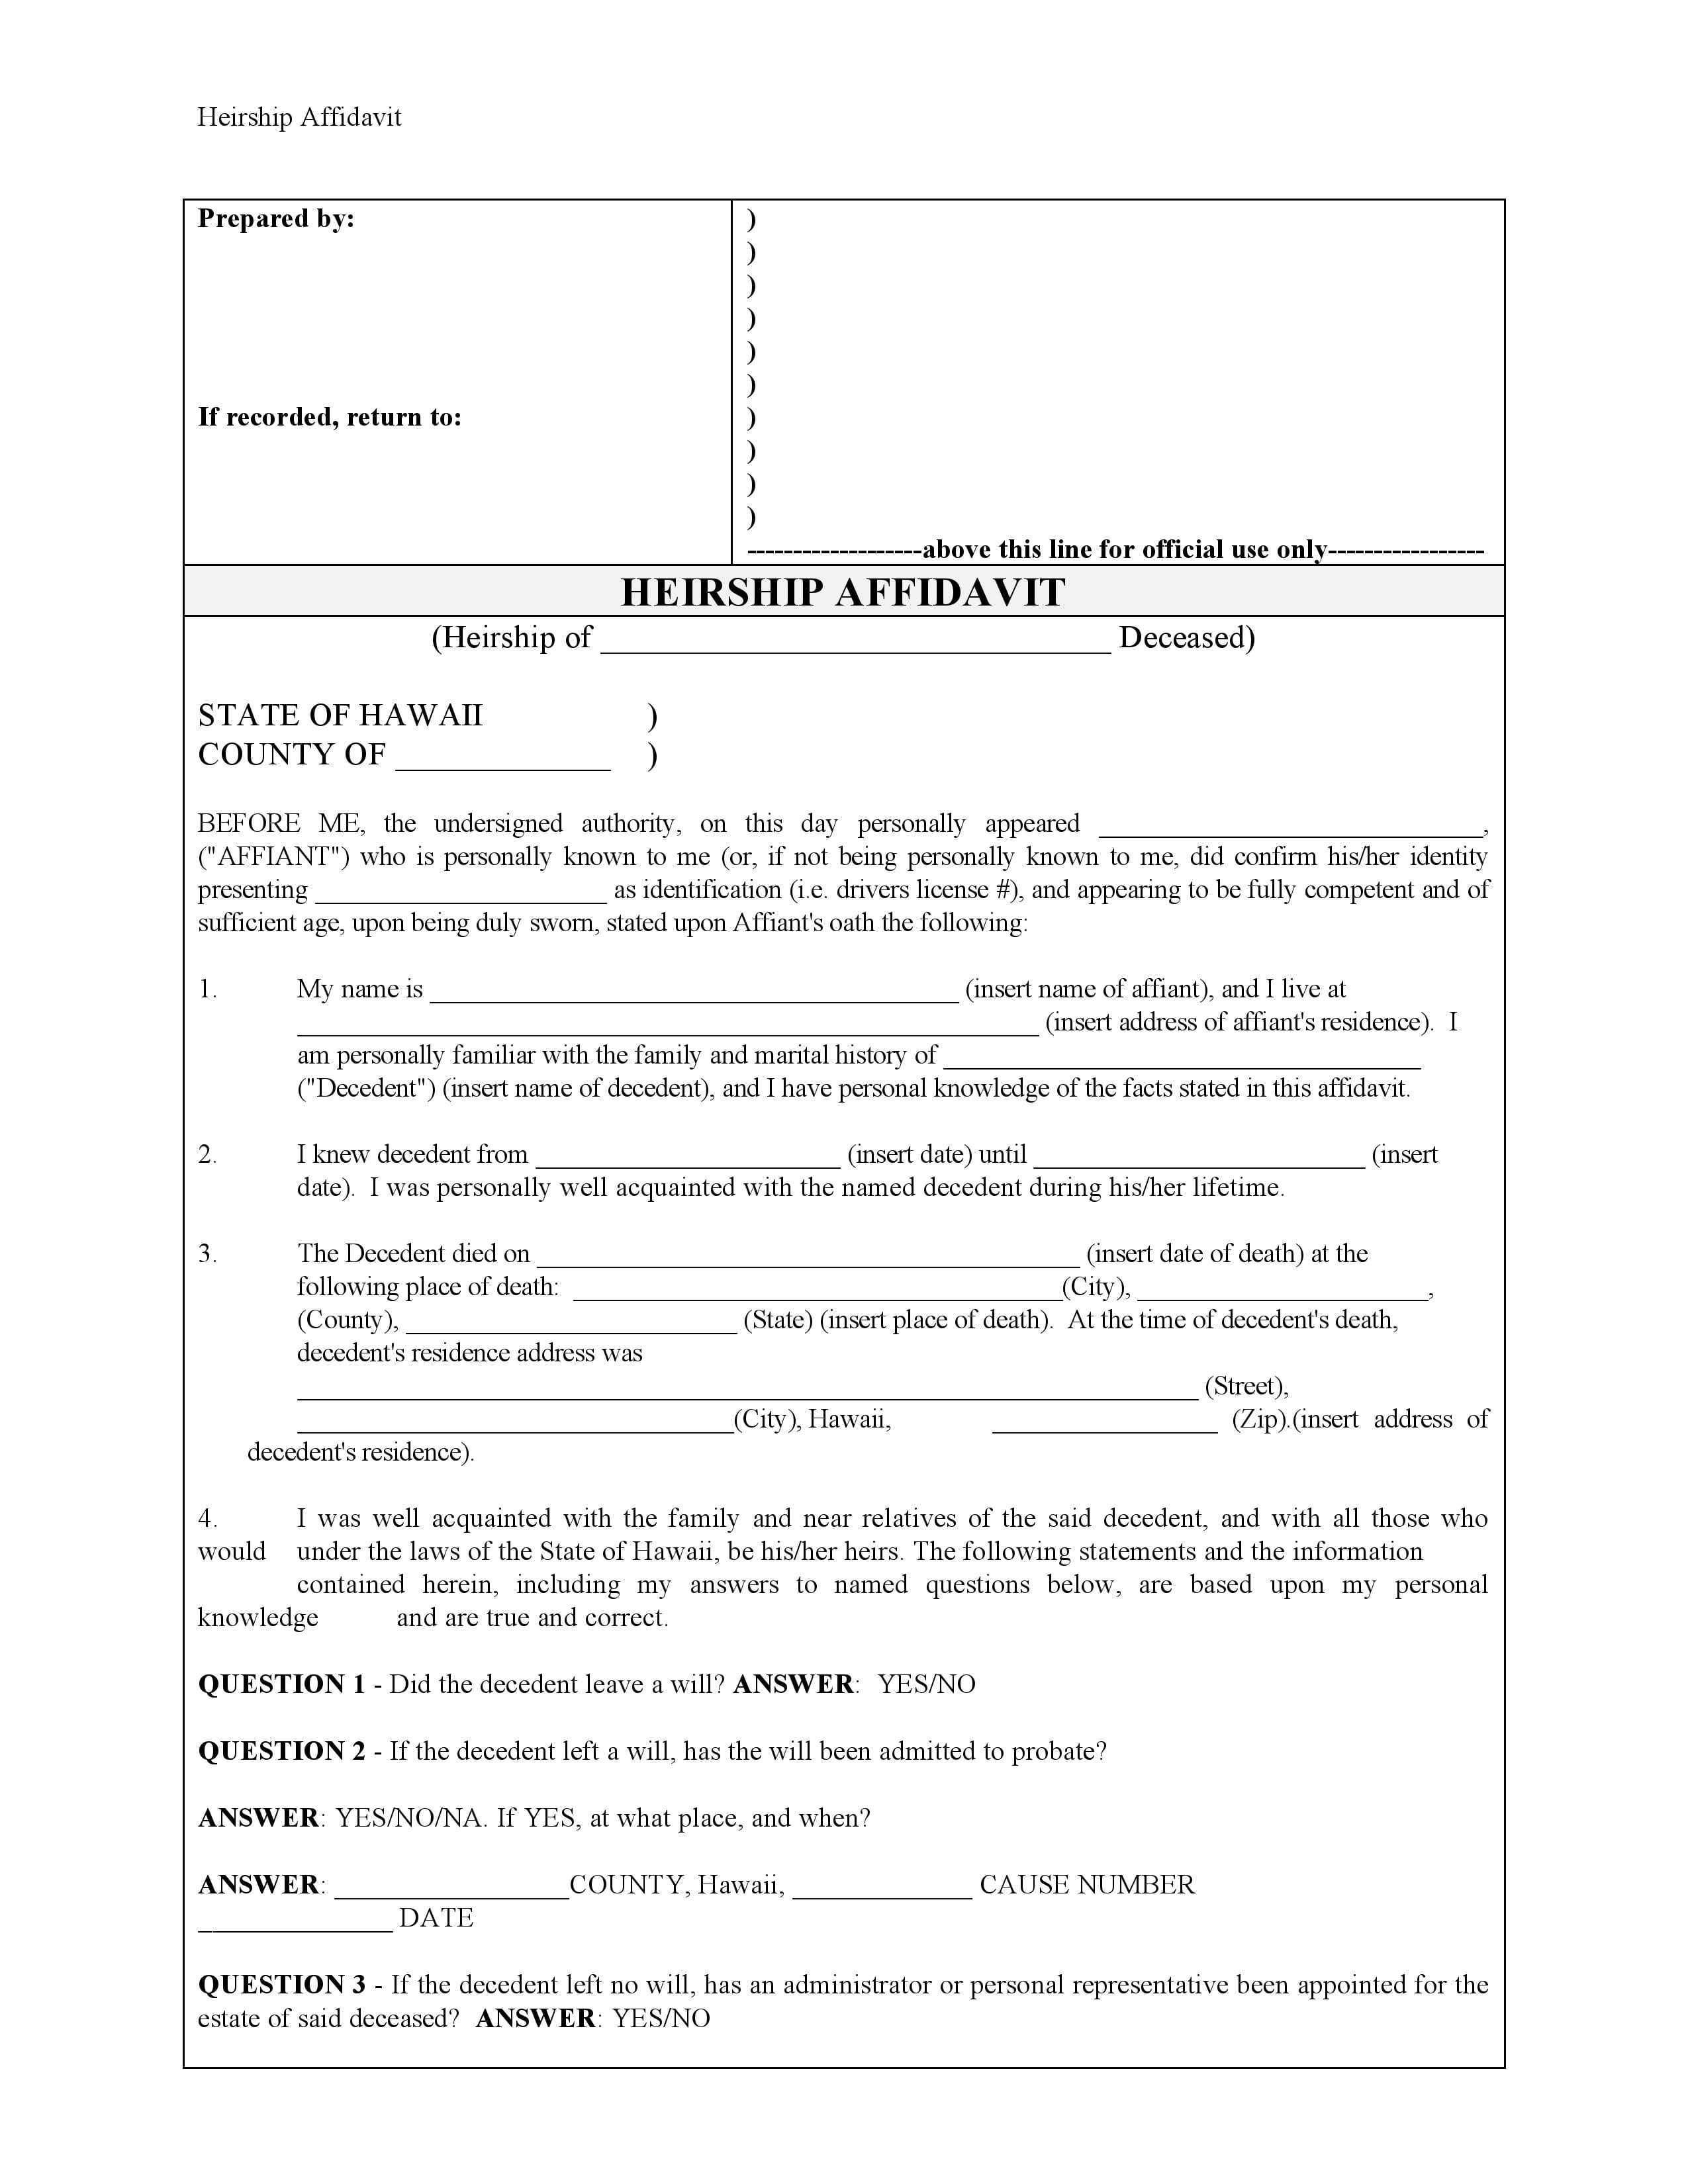 Hawaii Affidavit Of Heirship